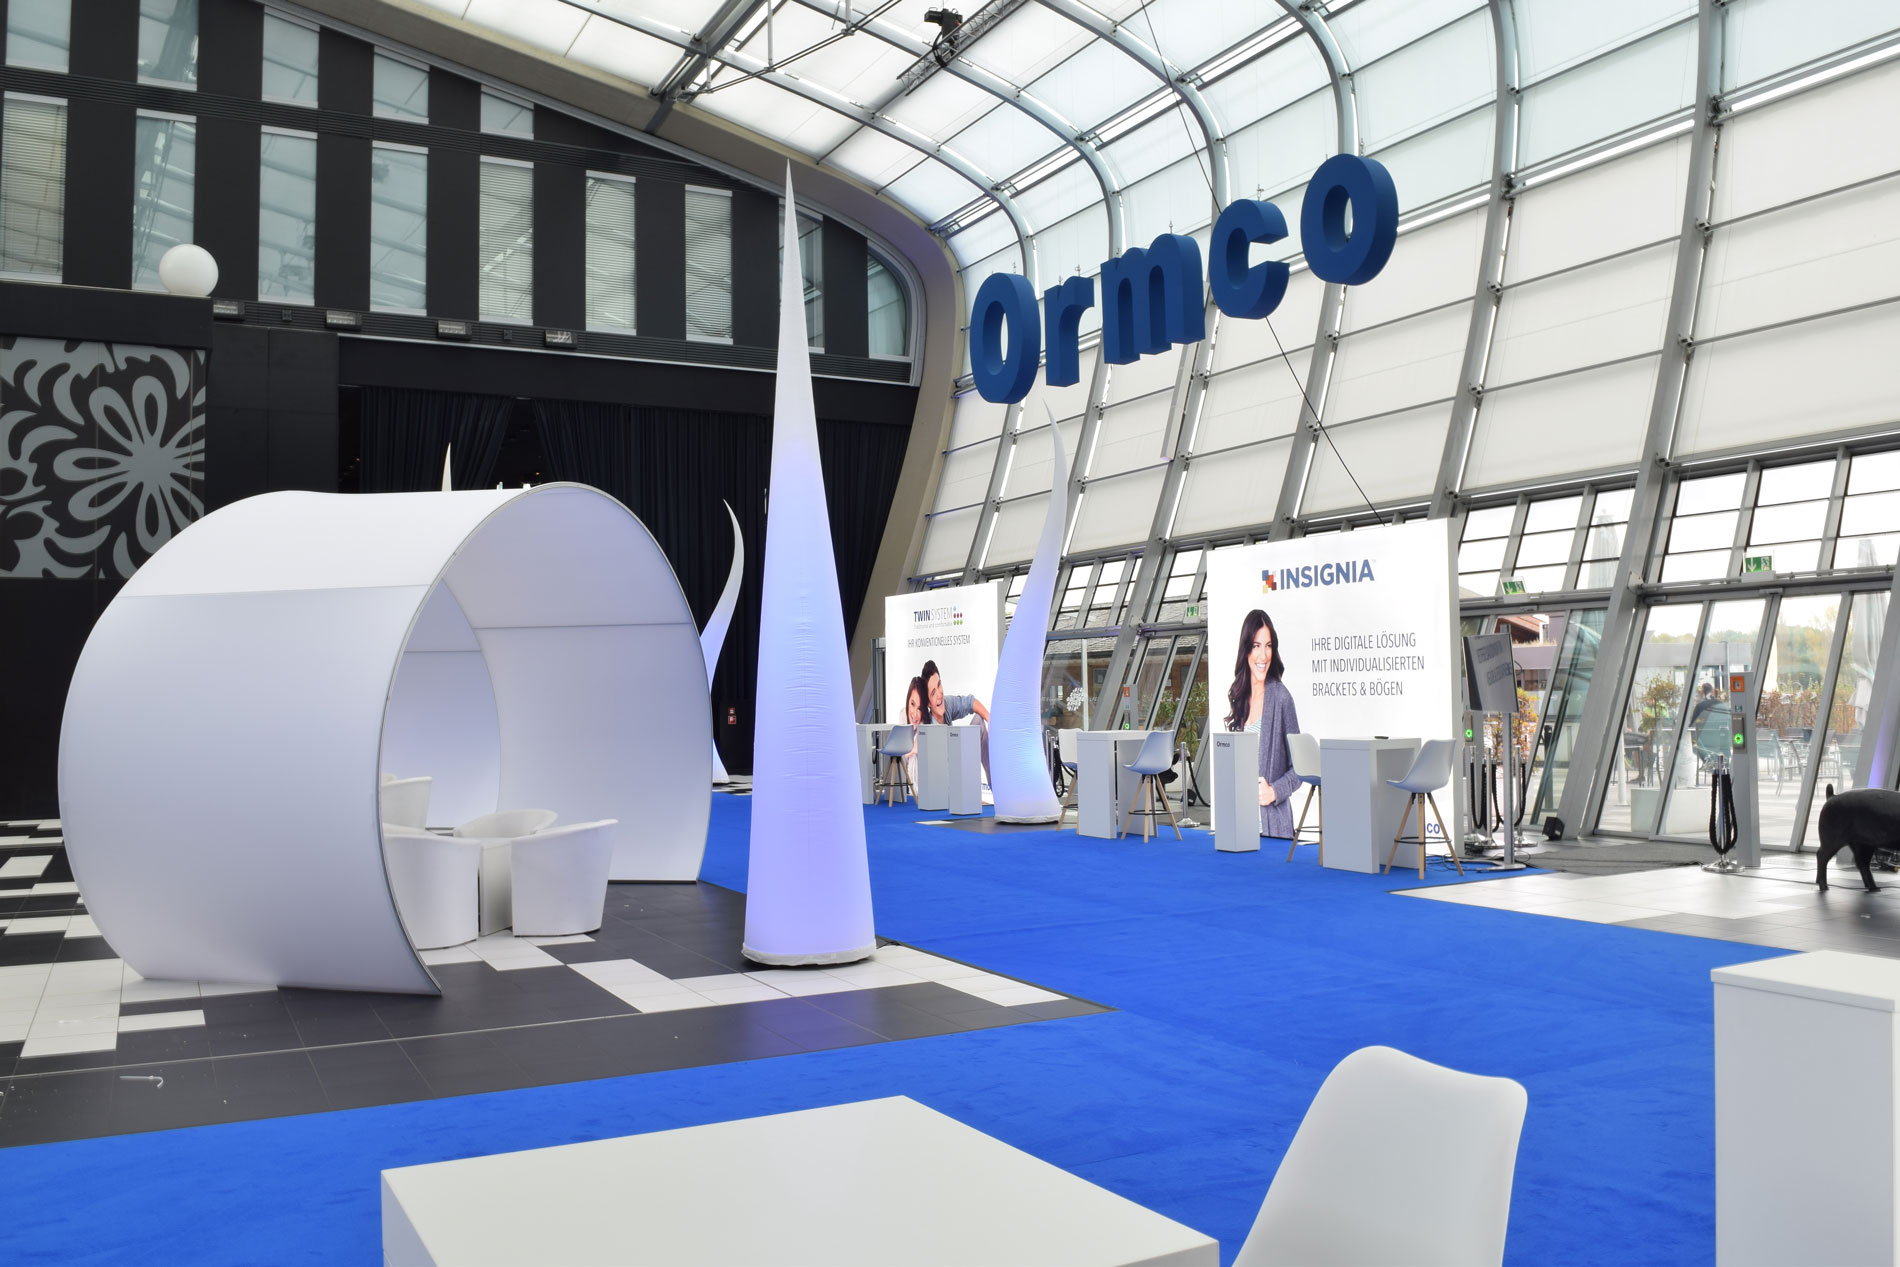 ormco_messebau_messedesign_hamburg_front